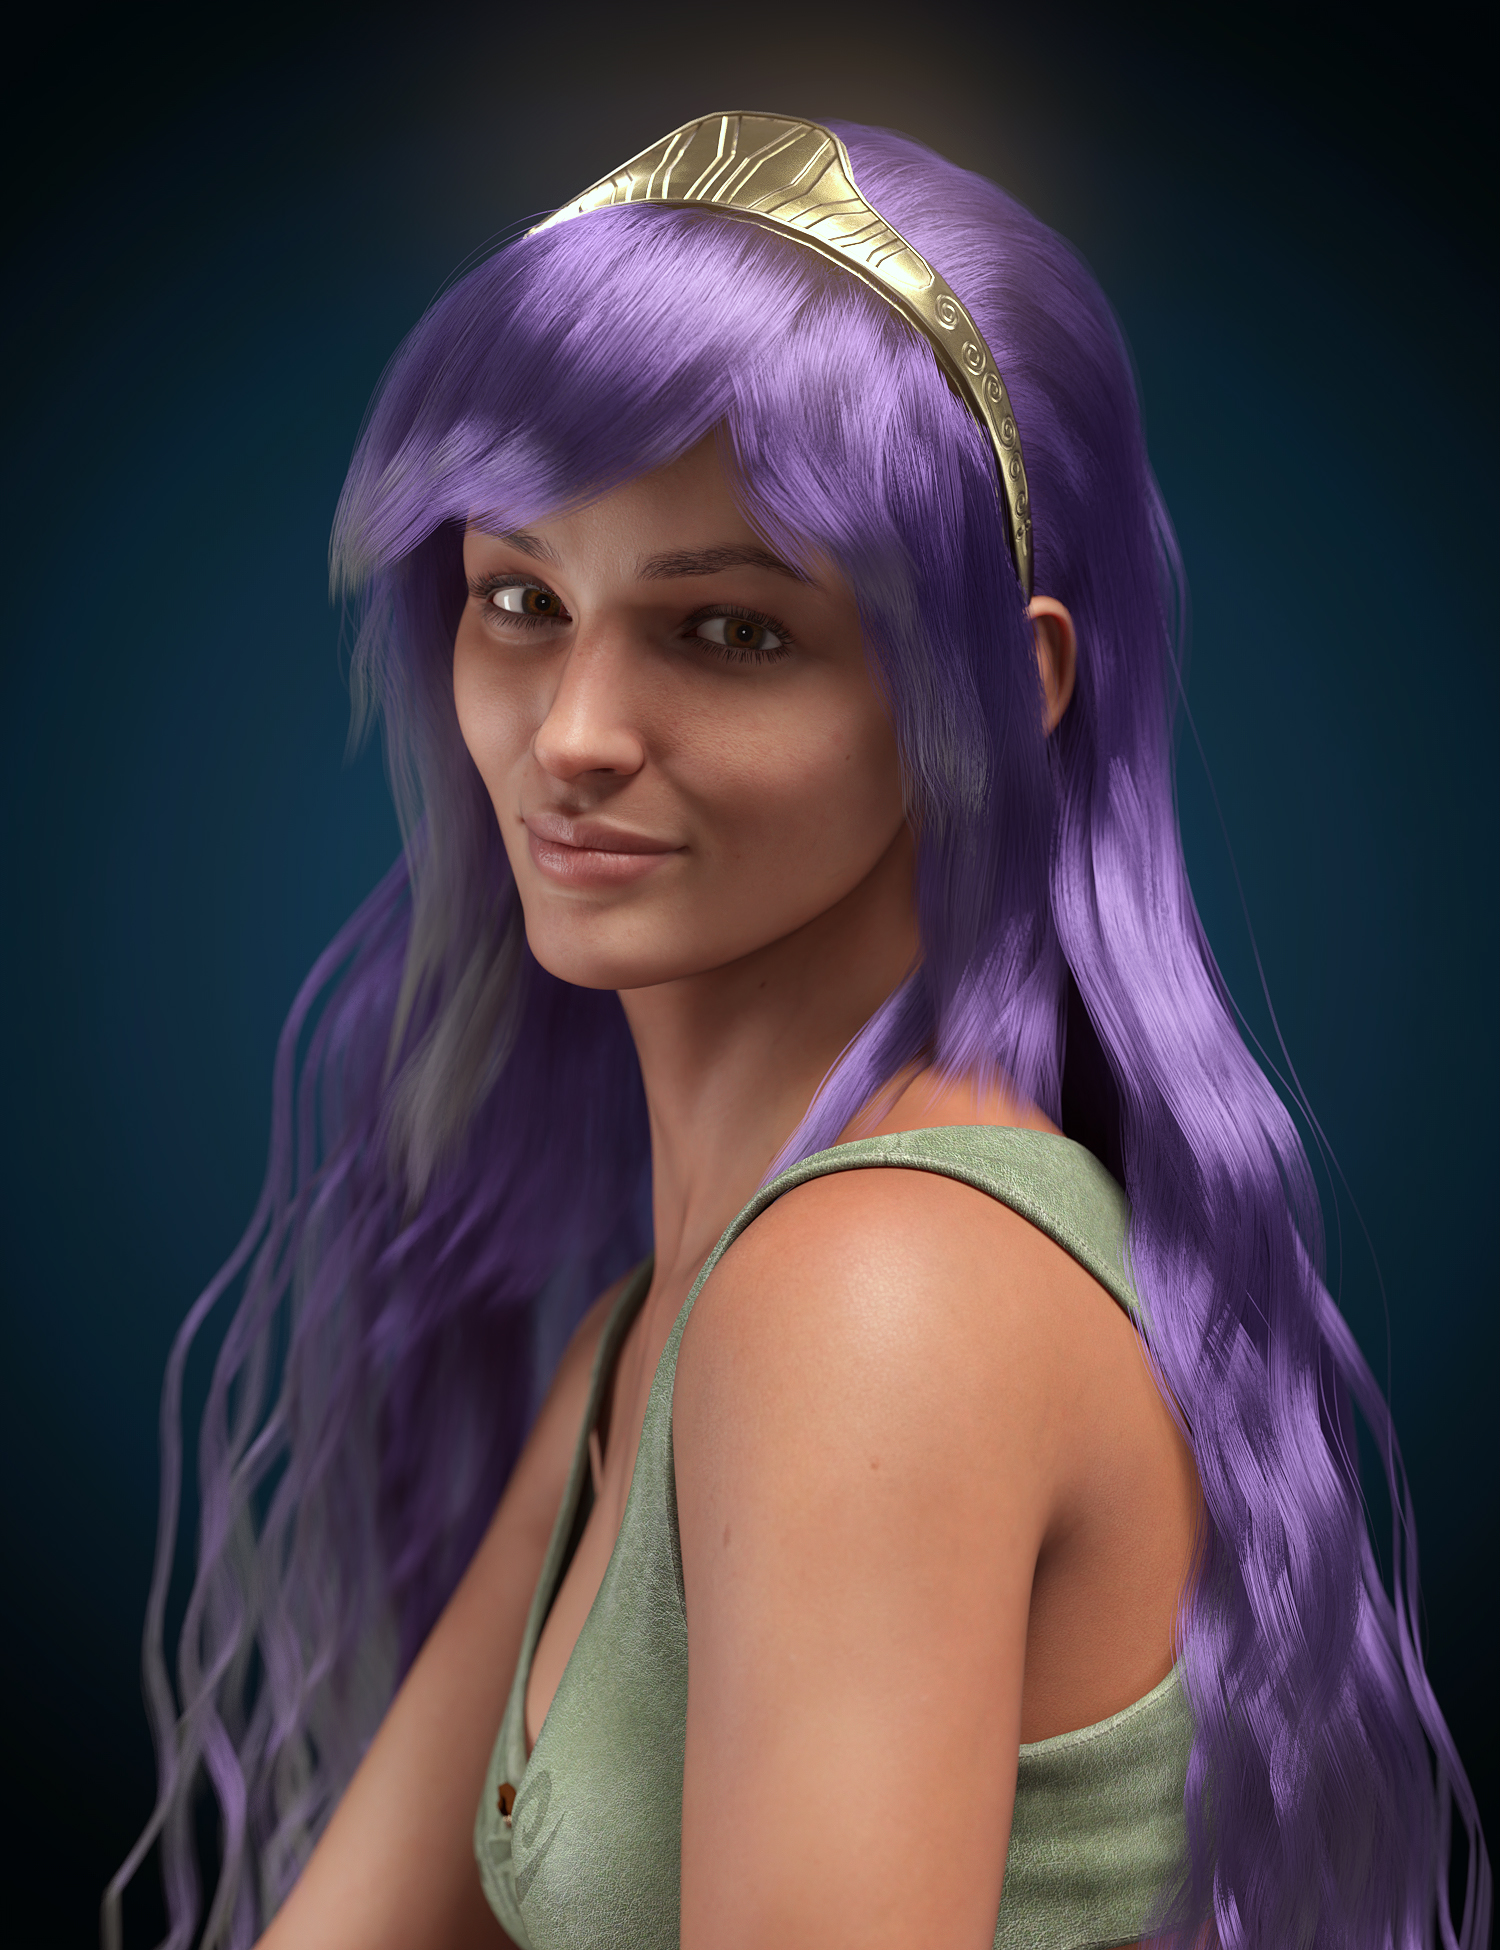 dForce Athena Hair for Genesis 8 and 8.1 Females by: HM, 3D Models by Daz 3D